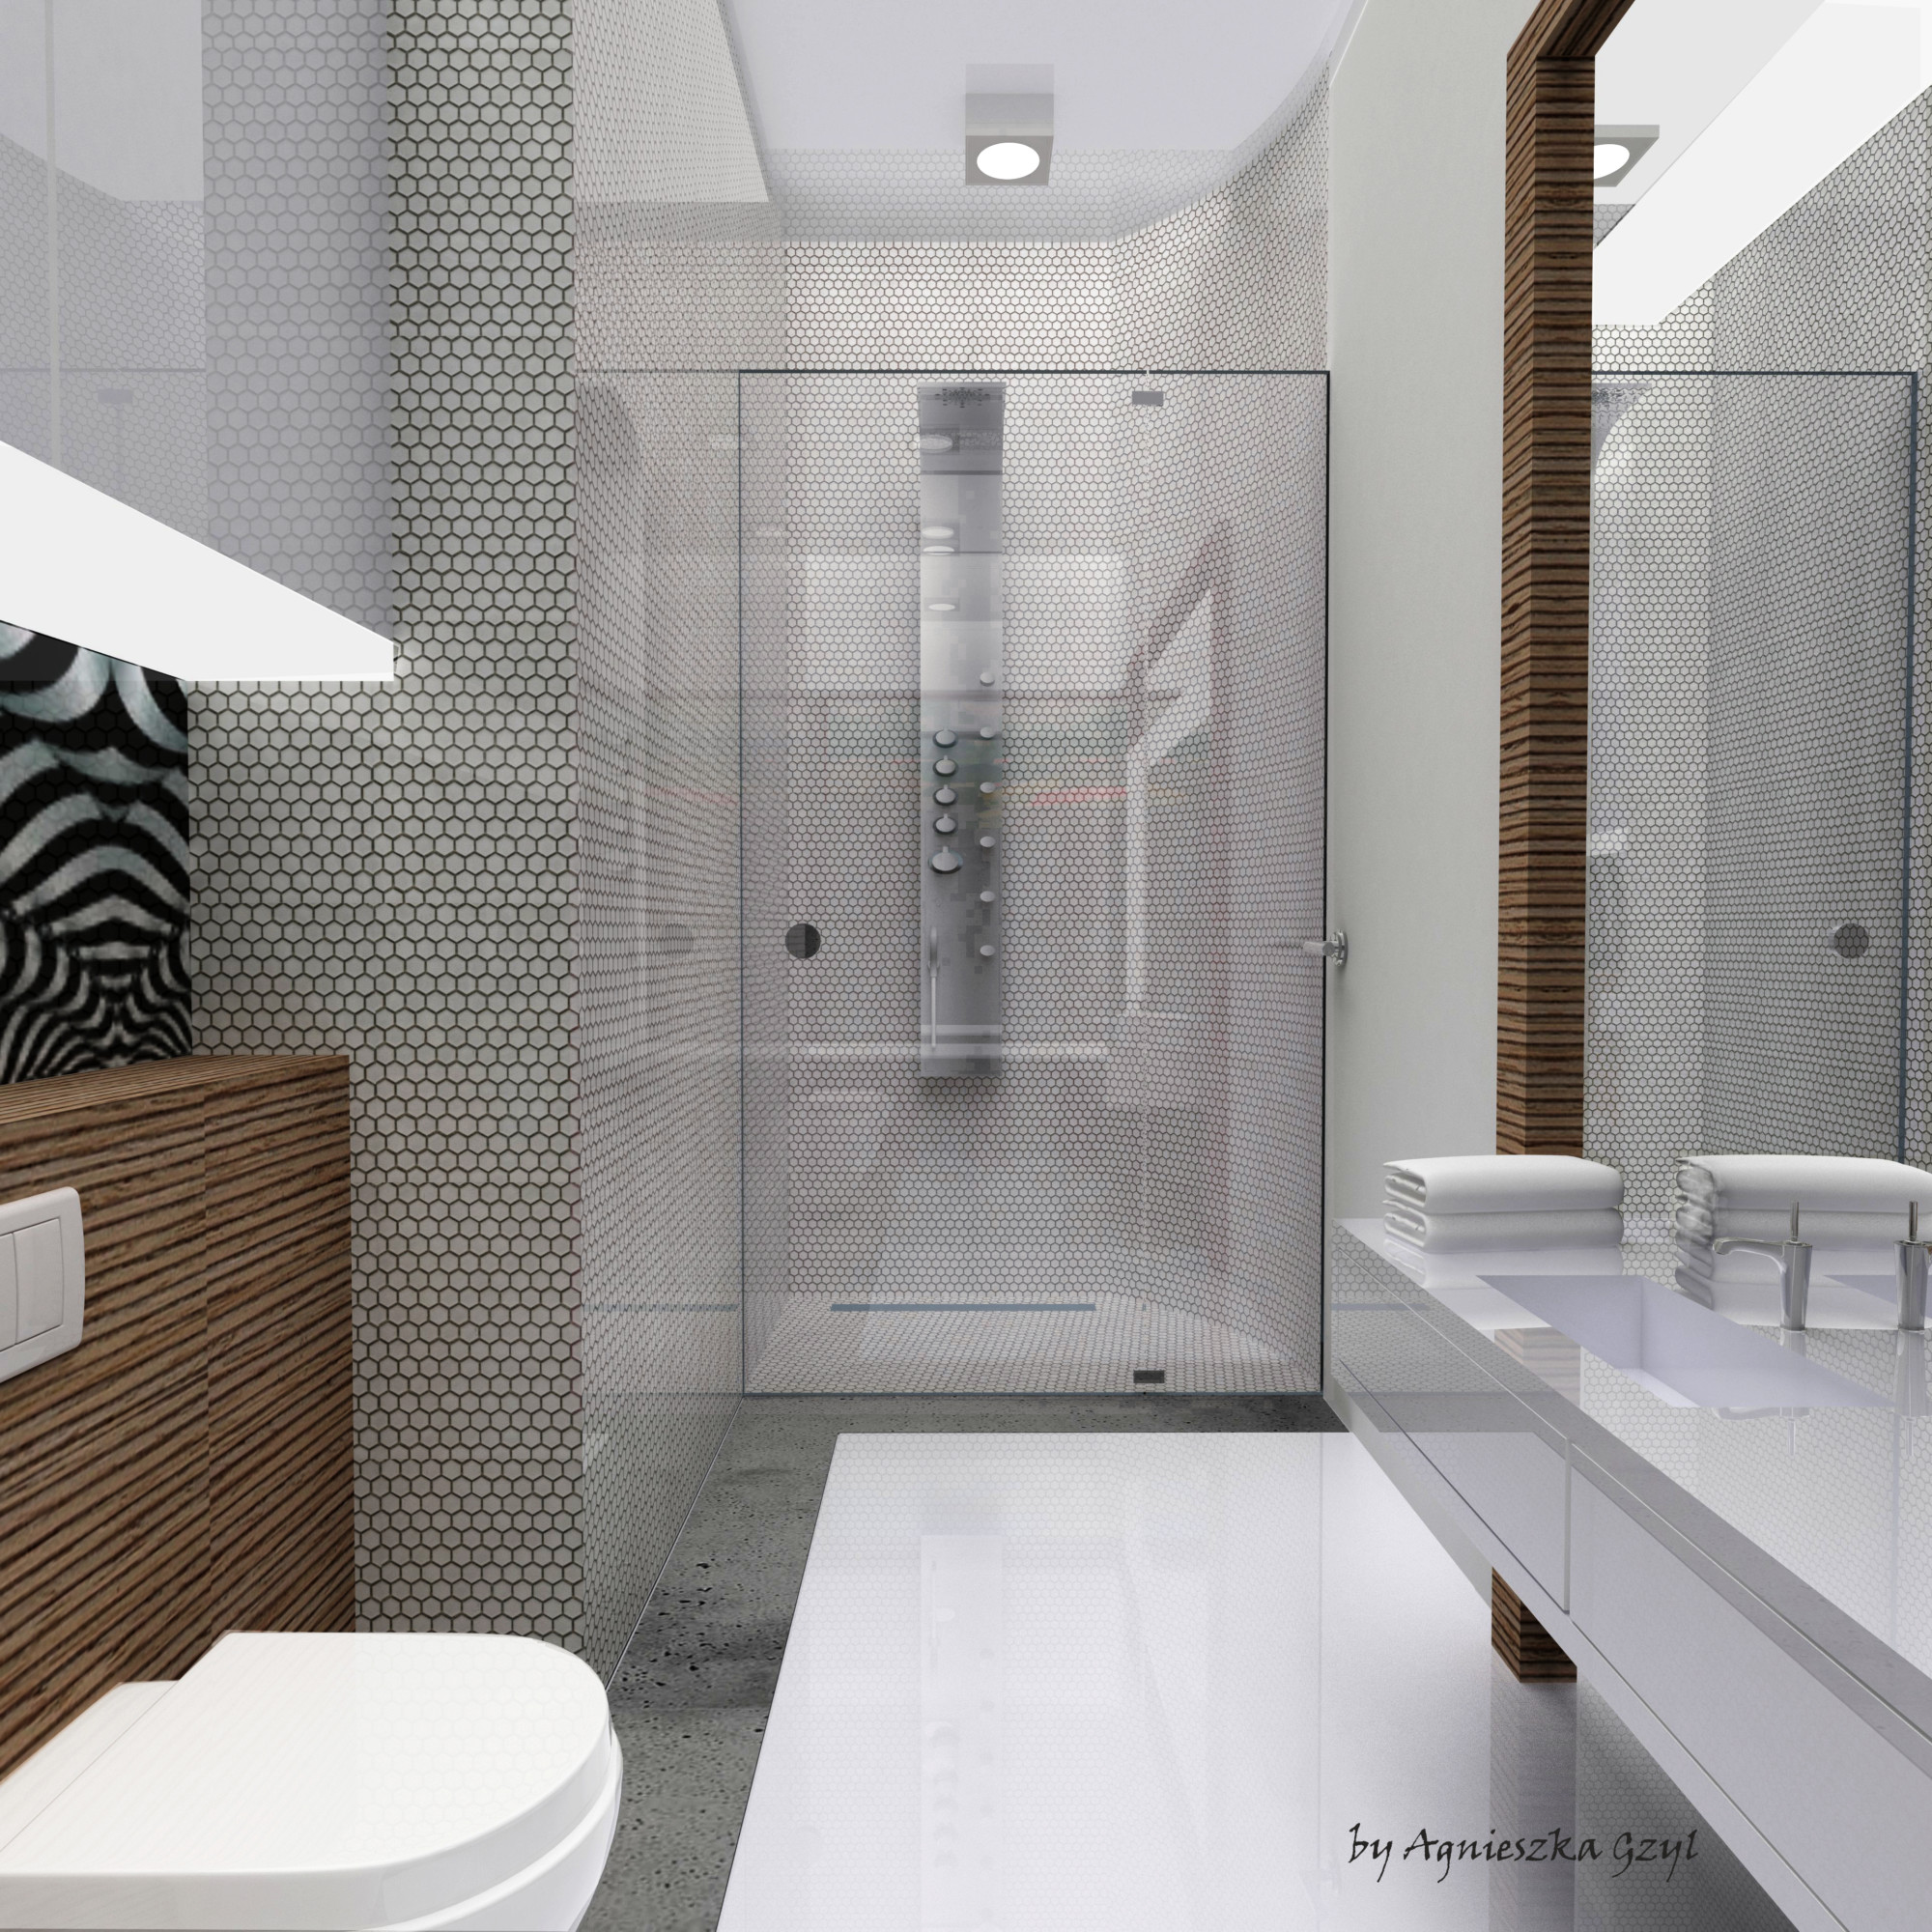 MASTER BEDROOM BATHROOM– PRIZE HOUSE IN THE POLISH VERSION ...